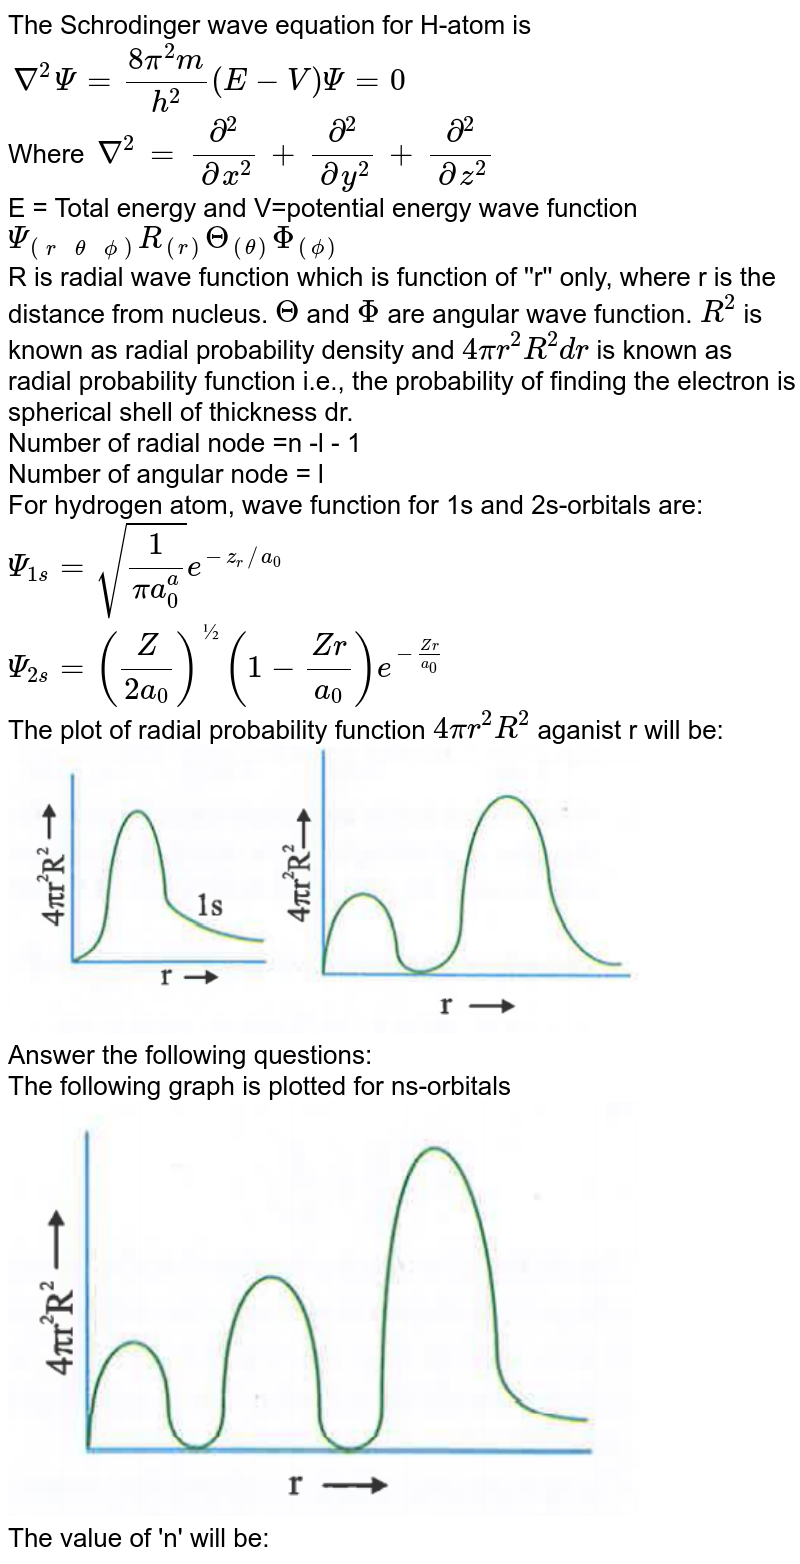 """The Schrodinger wave equation for H-atom is <br> `nabla^(2) Psi = (8pi^(2)m)/(h^(2)) (E-V) Psi = 0` <br> Where `nabla^(2) = (del^(2))/(delx^(2)) +(del^(2))/(dely^(2)) +(del^(2))/(delz^(2))` <br> E = Total energy and V=potential energy wave function `Psi_(((r, theta,phi)))R_((r))Theta_((theta))Phi_((phi))` <br> R is radial wave function which is function of ''r'' only, where r is the distance from nucleus. `Theta` and `Phi` are angular wave function. `R^(2)` is known as radial probability density and `4pir^(2)R^(2)dr` is known as radial probability function i.e., the probability of finding the electron is spherical shell of thickness dr. <br> Number of radial node =n -l - 1 <br> Number of angular node = l <br> For hydrogen atom, wave function for 1s and 2s-orbitals are:  <br> `Psi_(1s) = sqrt((1)/(pia_(0)^(a)))e^(-z_(r)//a_(0))` <br> `Psi_(2s) = ((Z)/(2a_(0)))^(½) (1-(Zr)/(a_(0)))e^(-(Zr)/(a_(0)))` <br> The plot of radial probability function `4pir^(2)R^(2)` aganist r will be: <br> <img src=""""https://d10lpgp6xz60nq.cloudfront.net/physics_images/NAR_CHM_V01_XI_C02_E01_623_Q01.png"""" width=""""80%""""> <br> Answer the following questions:  <br> The following graph is plotted for ns-orbitals <br> <img src=""""https://d10lpgp6xz60nq.cloudfront.net/physics_images/NAR_CHM_V01_XI_C02_E01_623_Q02.png"""" width=""""80%"""">  <br> The value of 'n' will be:"""